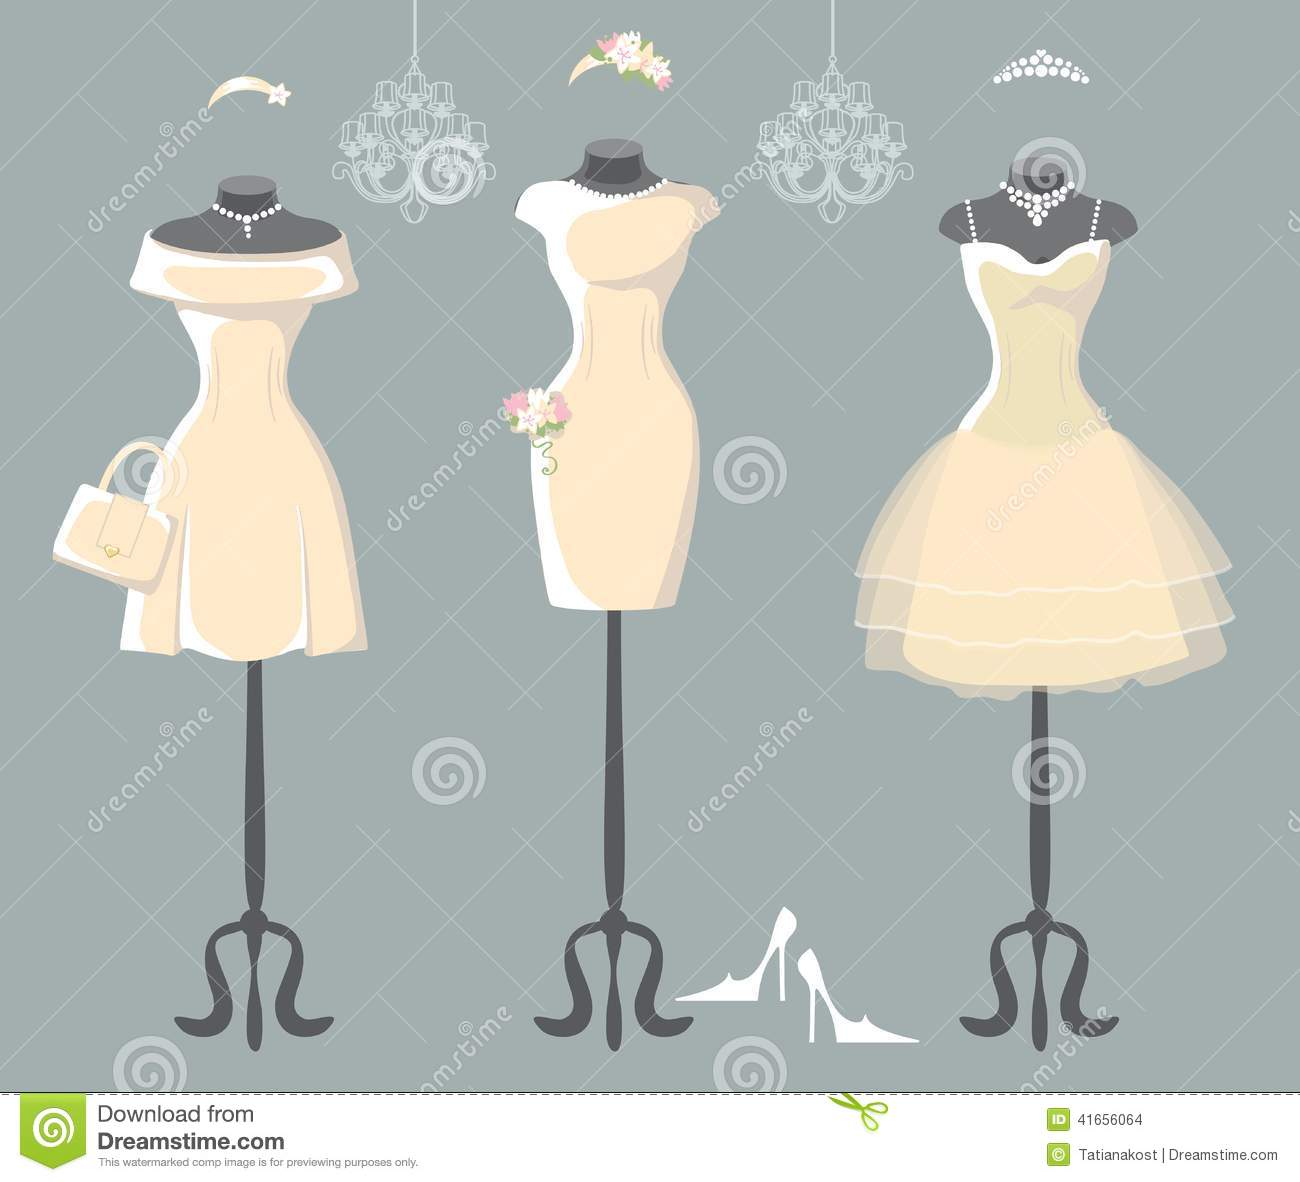 Bodice Stock Illustrations – 351 Bodice Stock Illustrations, Vectors ...